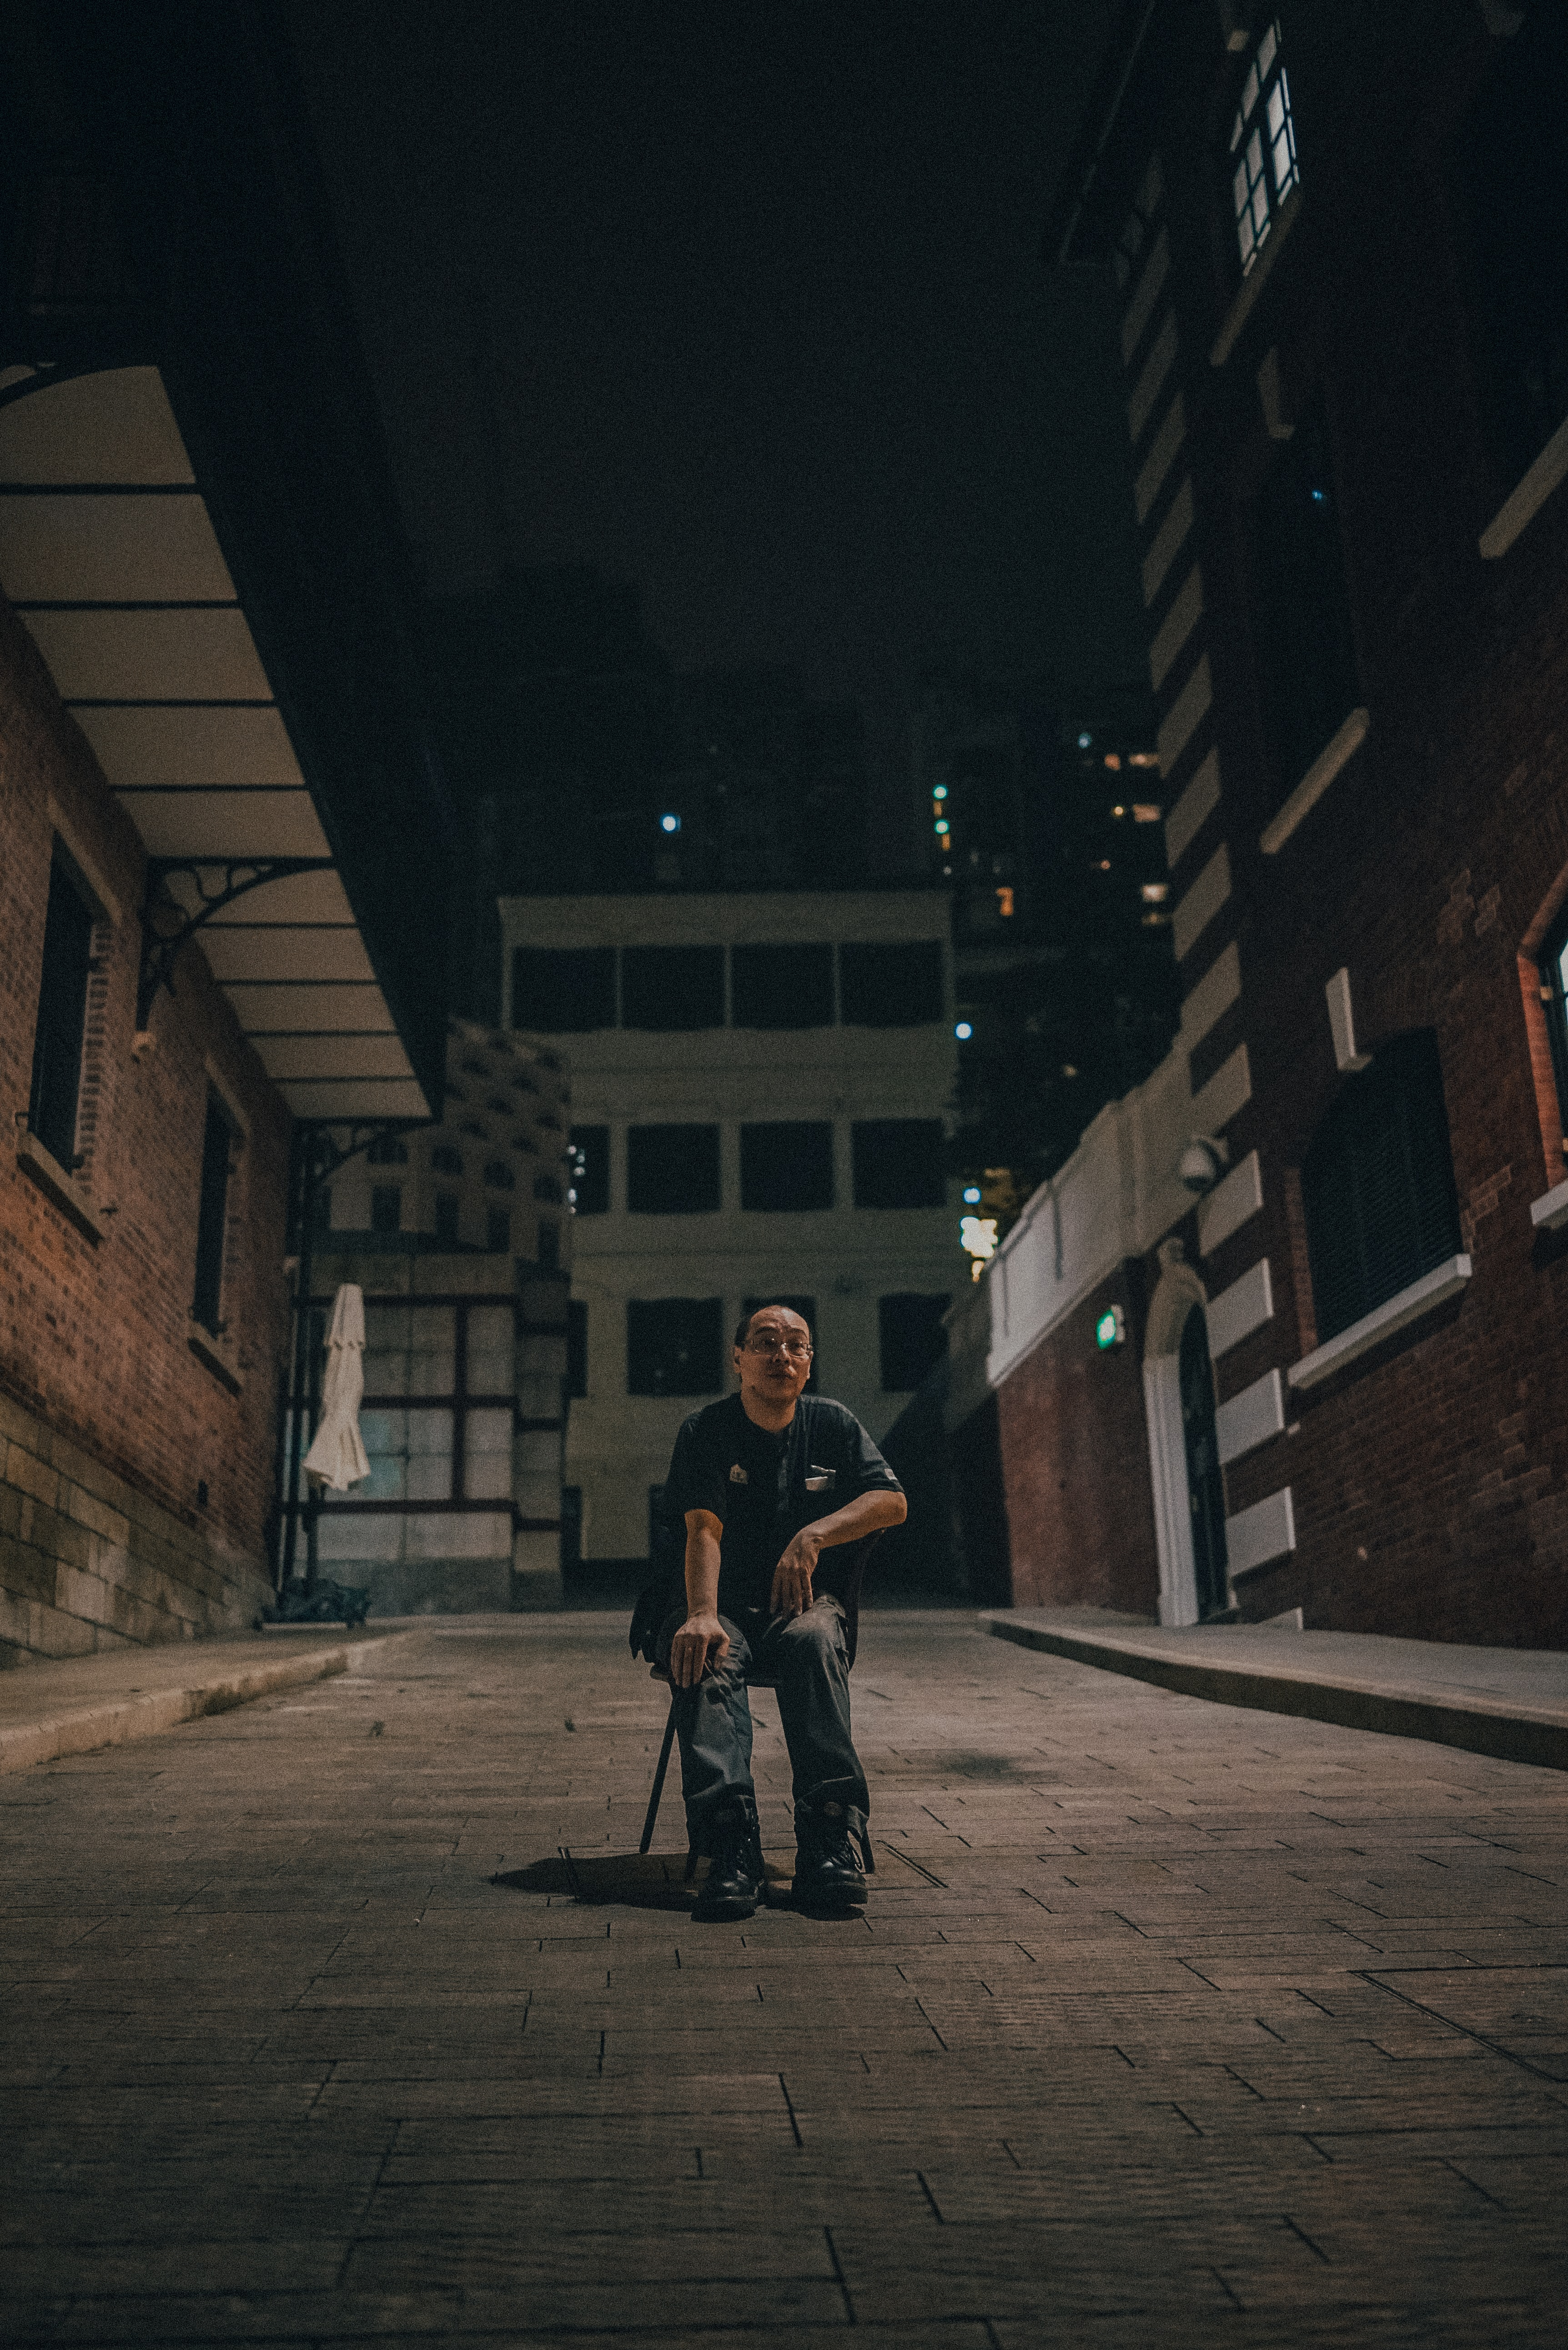 man sitting on chair between brown brick buildings